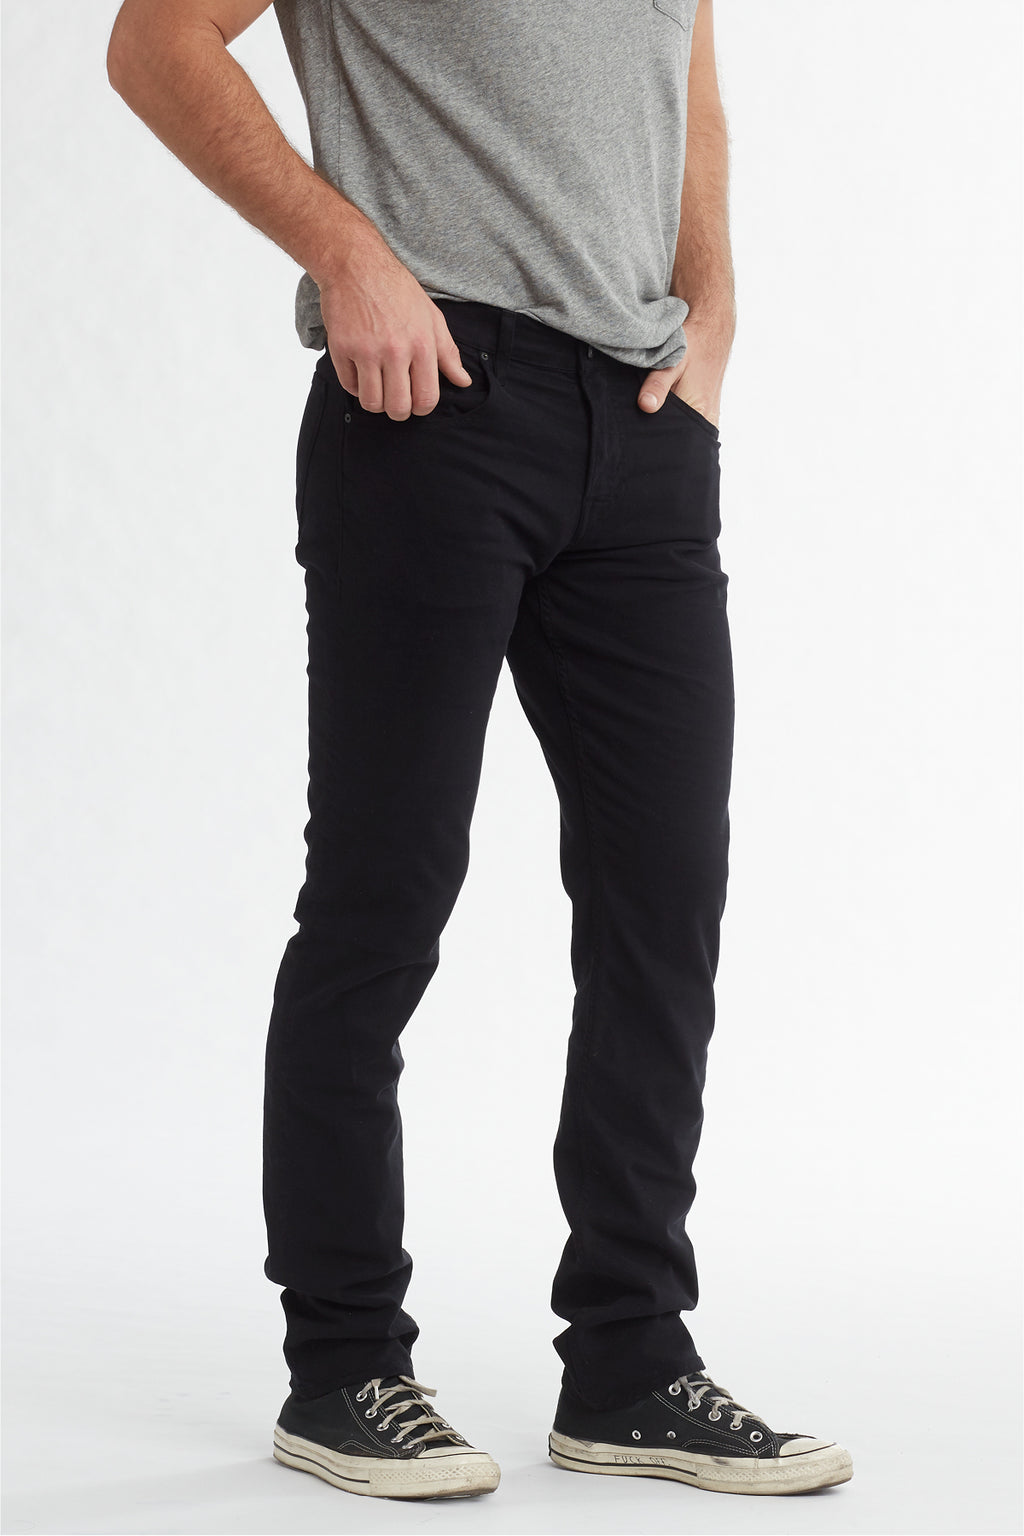 BLAKE SLIM STRAIGHT TWILL JEAN - BLACK - Image 2